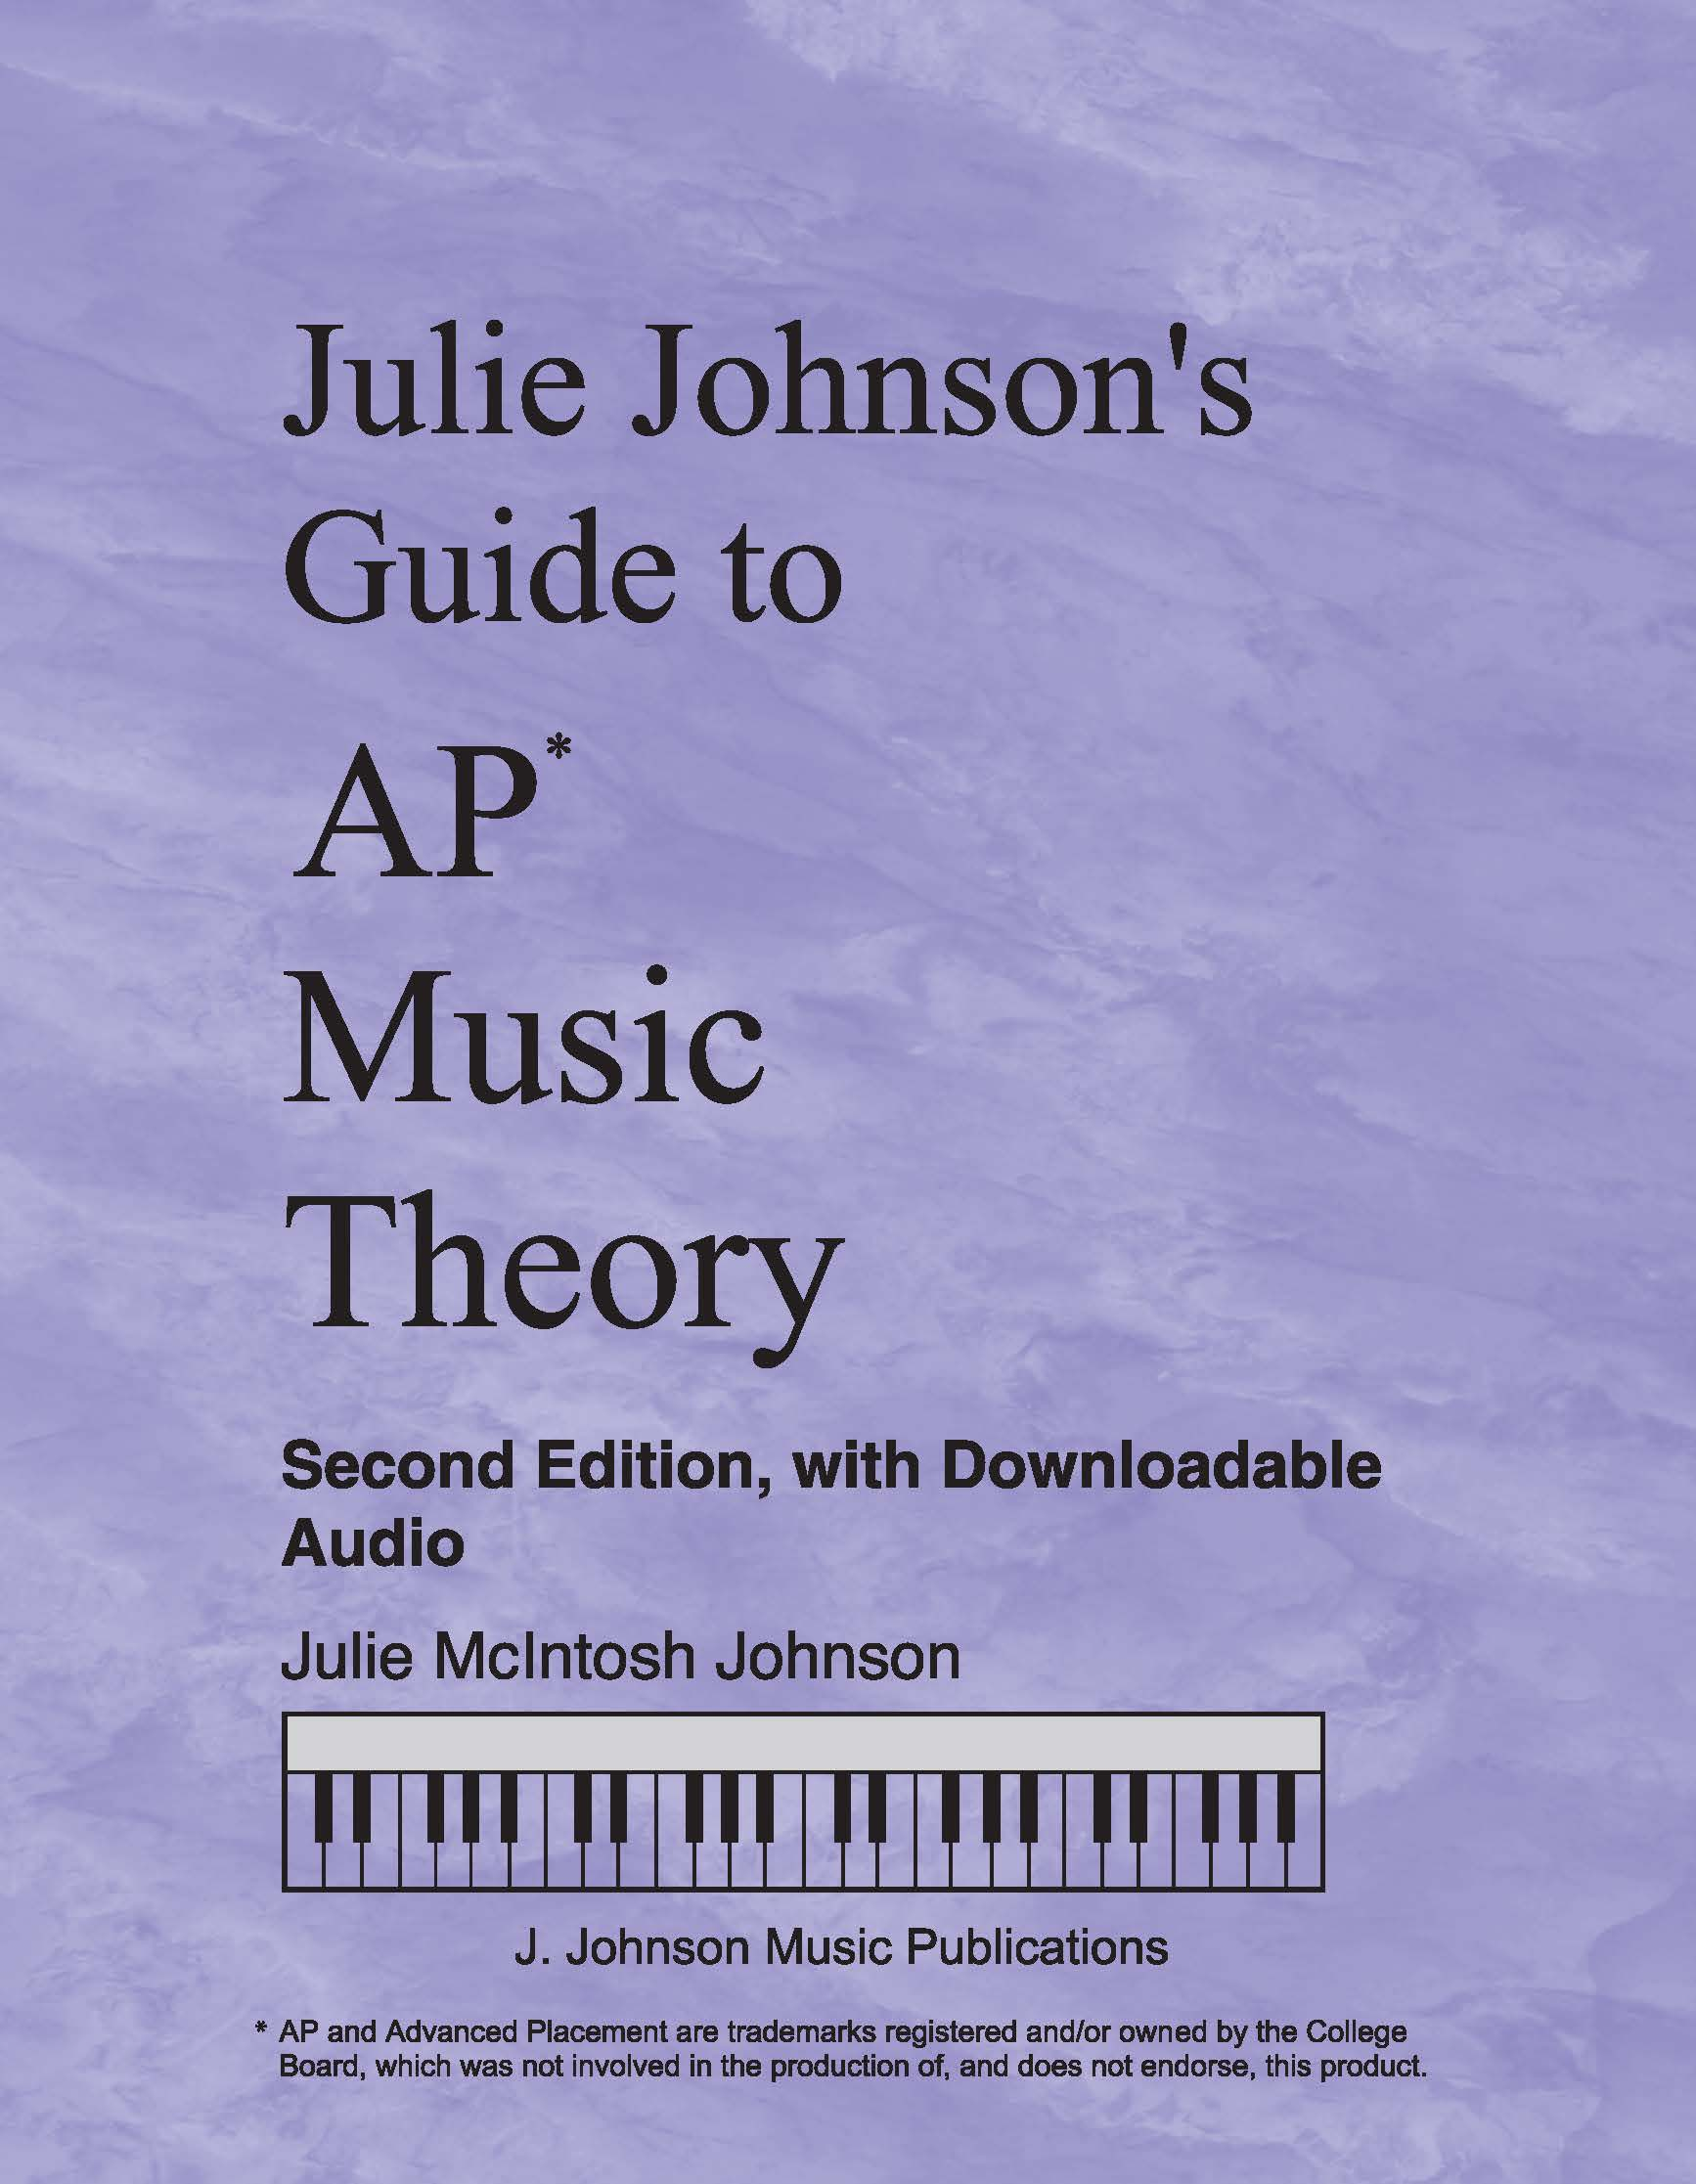 Julie Johnson's Guide to AP Music Theory